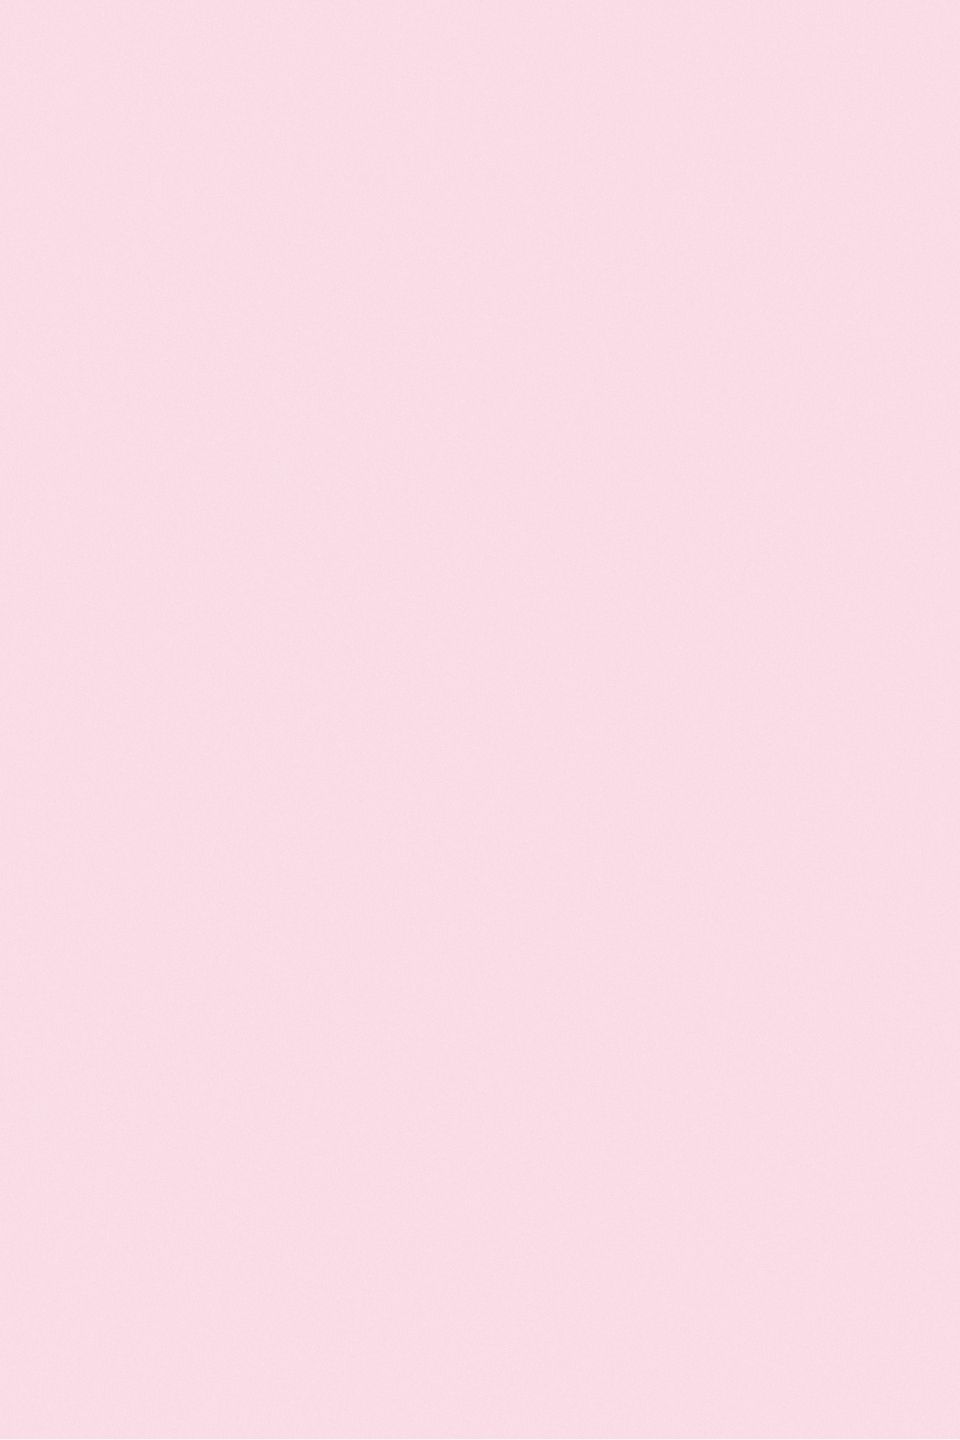 Pink Background Solid Color Simple Flat ในปี 2020 วอลเป